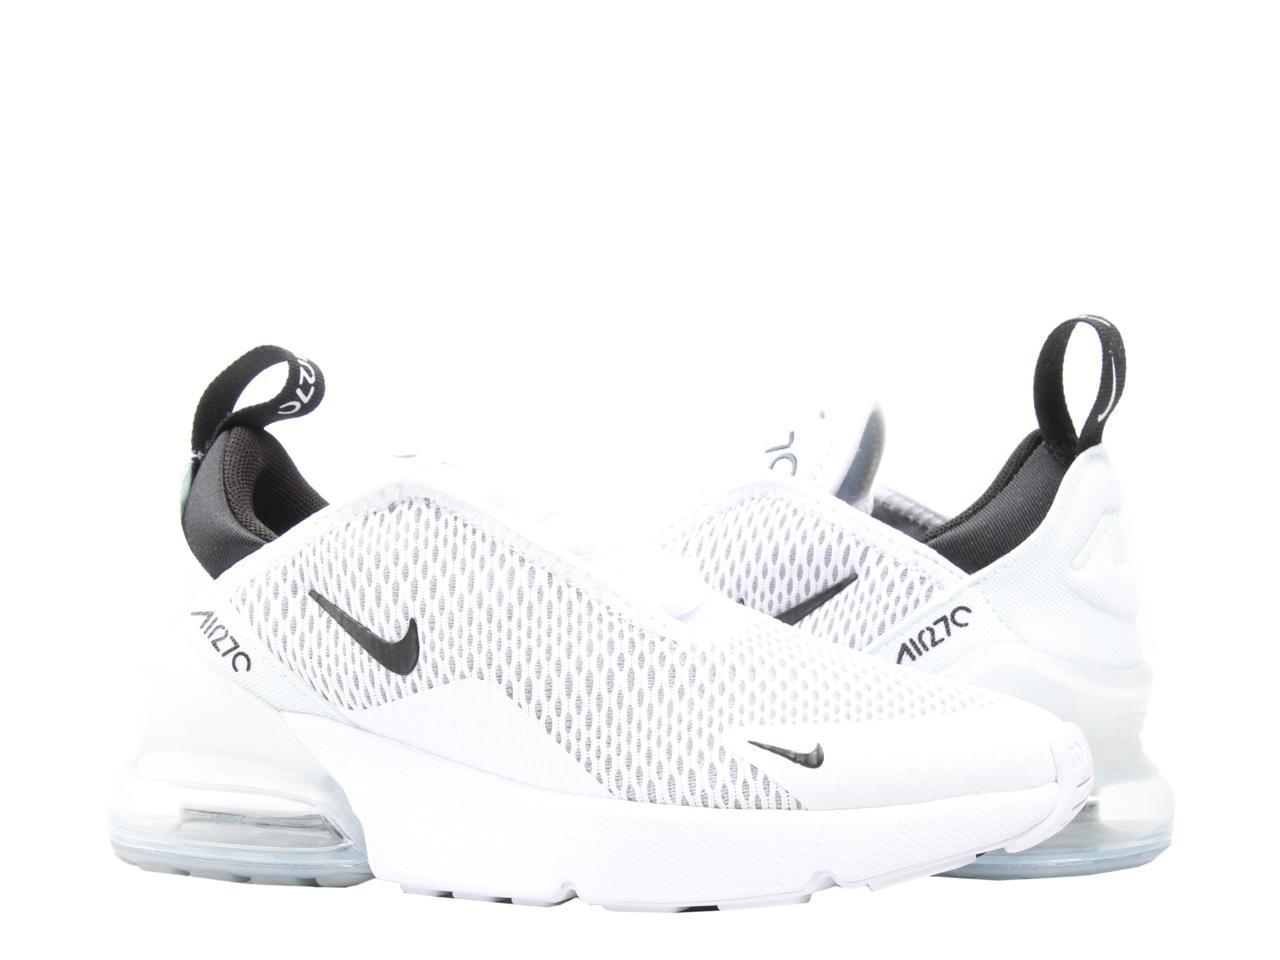 Nike Air Max 270 (PS) White/Black-White Little Kids Running Shoes  AO2372-100 Size 13